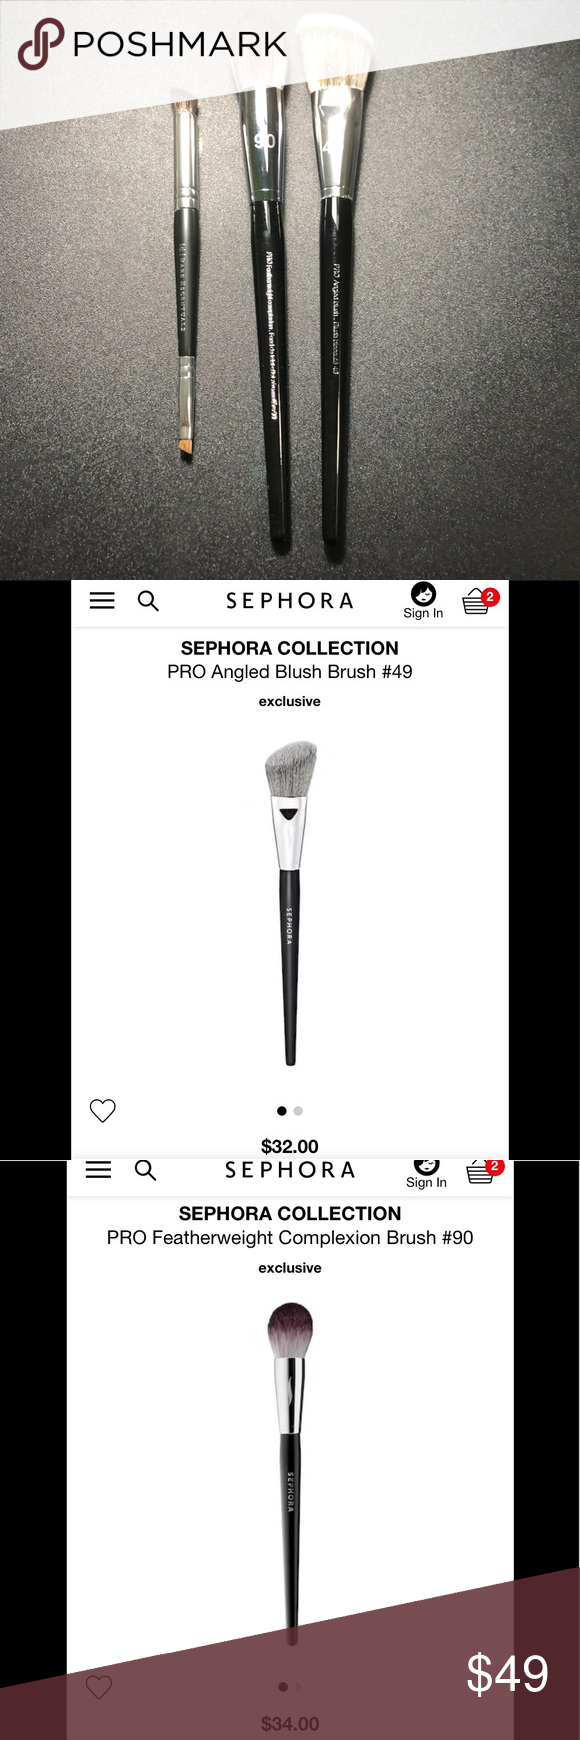 Pro Featherweight Complexion Brush #90 by Sephora Collection #20